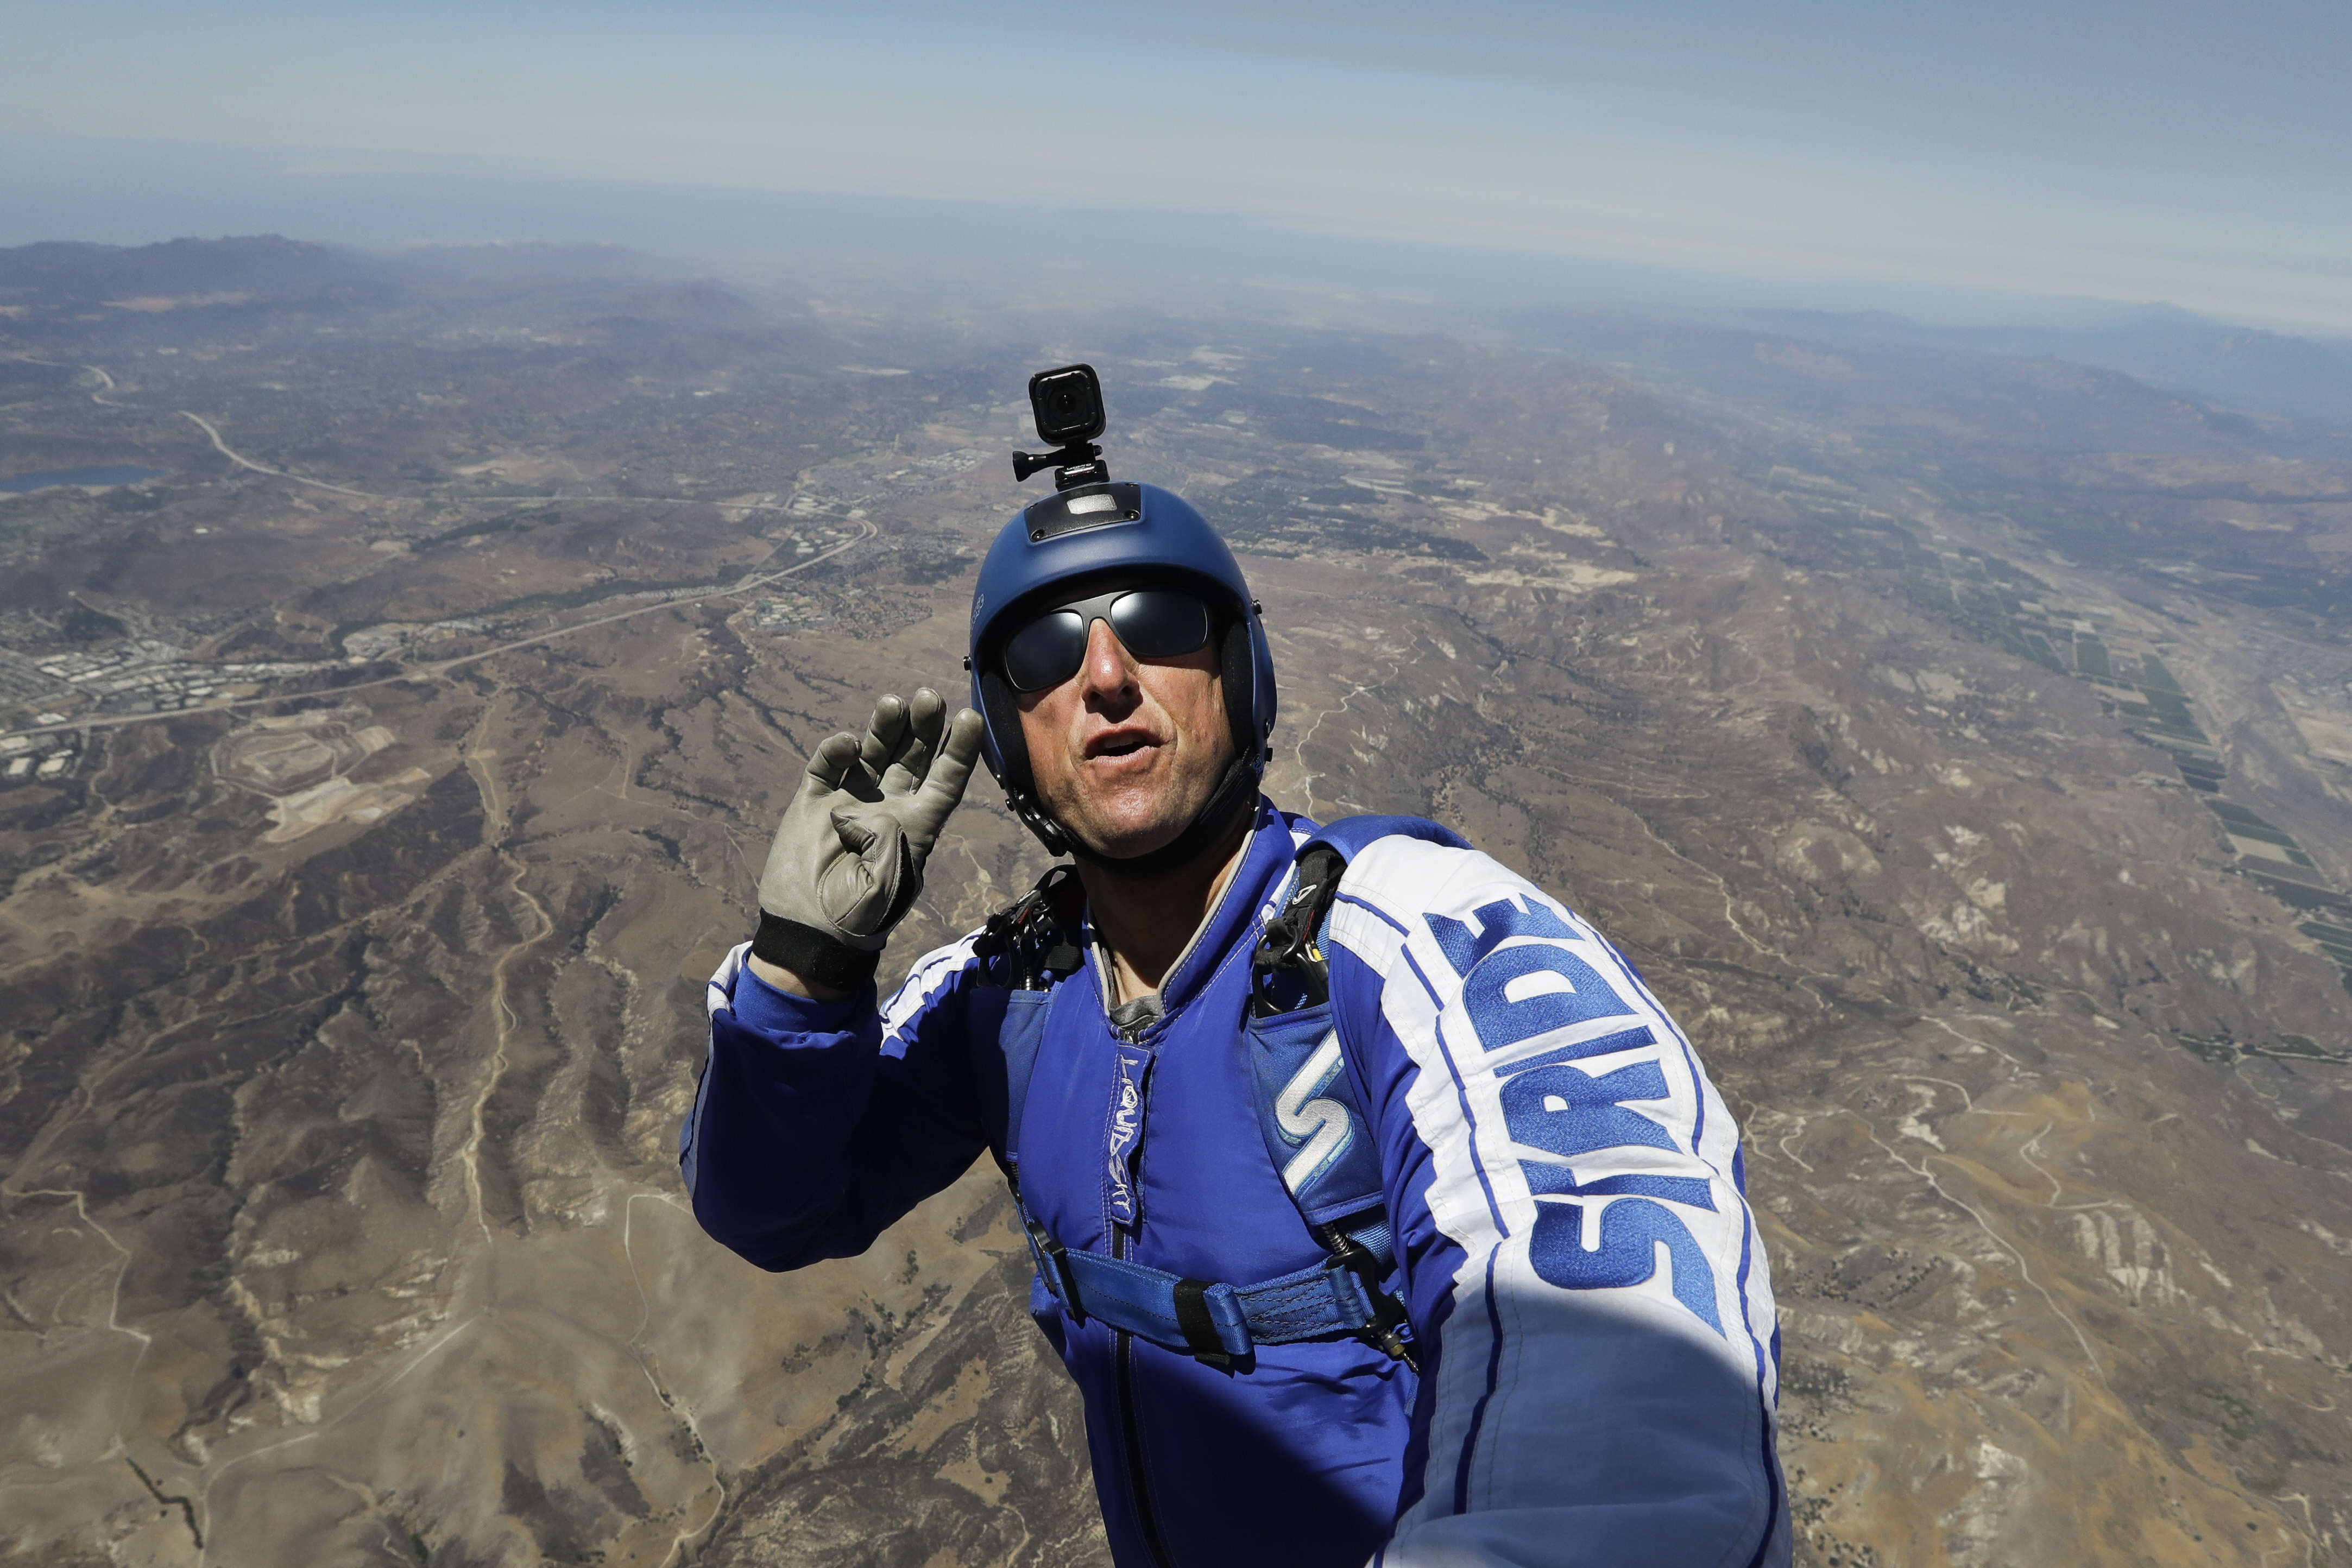 Skydiving Without Parachute